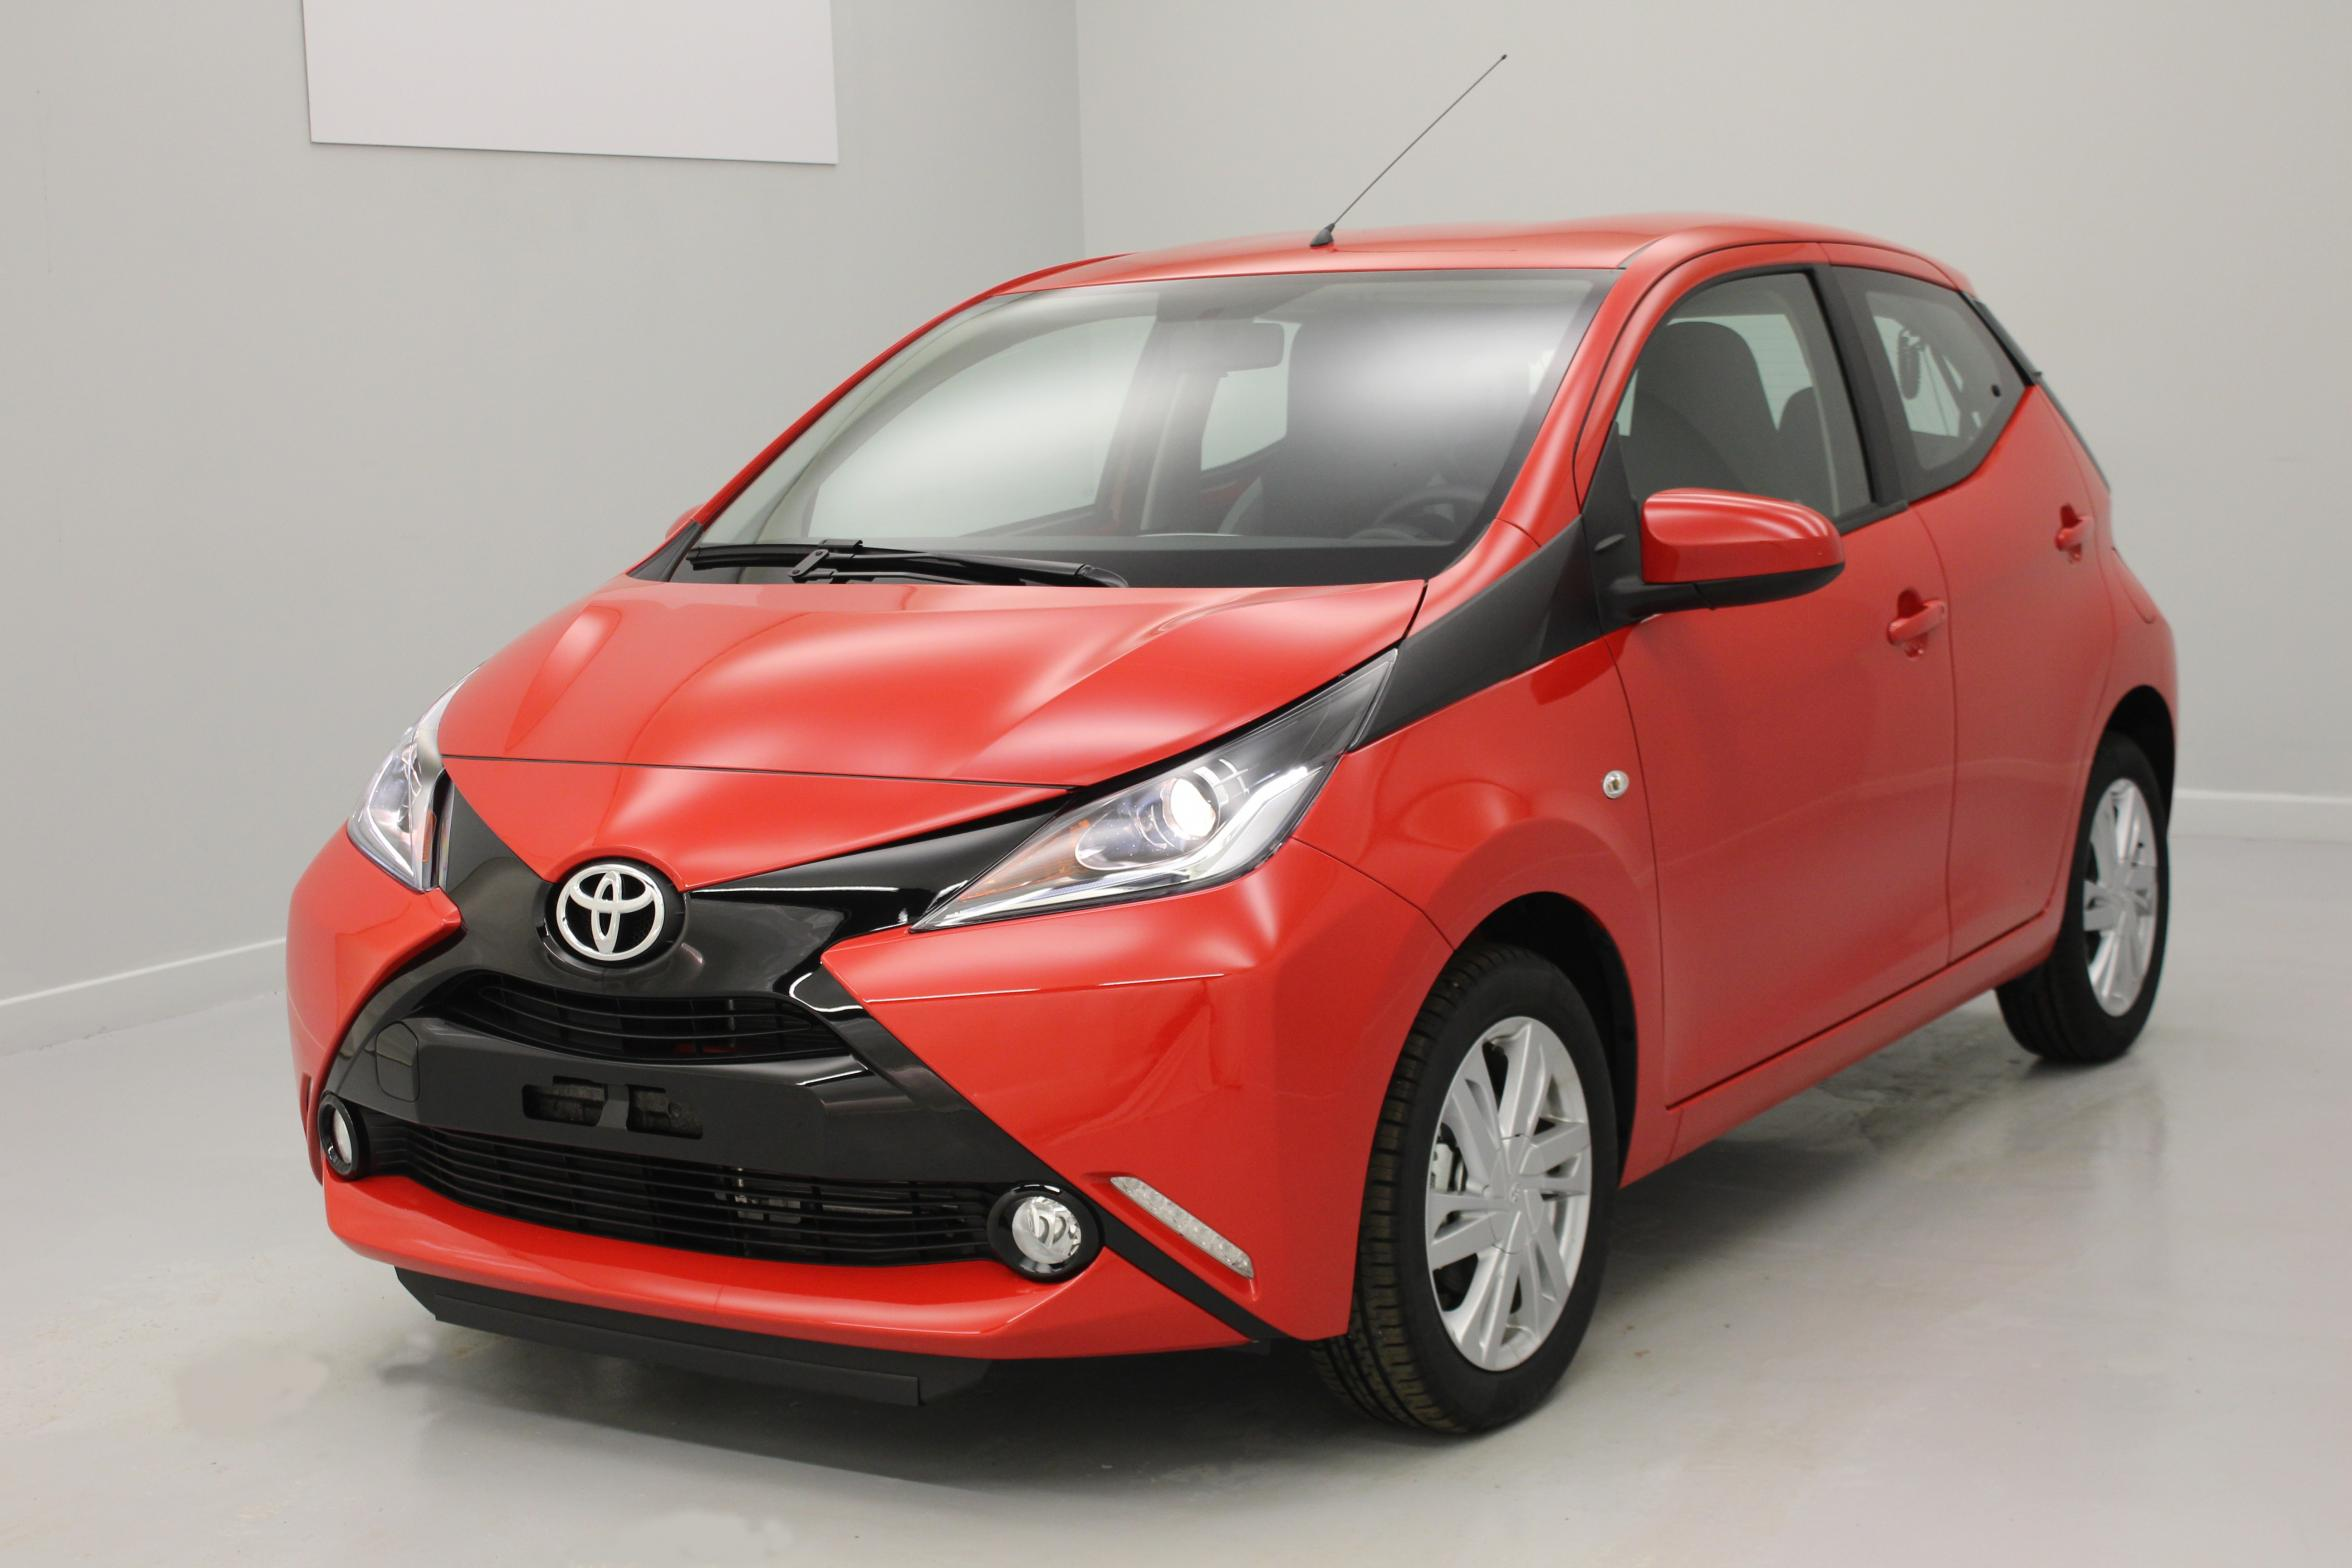 TOYOTA Aygo 1.0 VVT-i x-play Rouge Chilien + x-touch + x-light + Jantes alliage 15' avec options